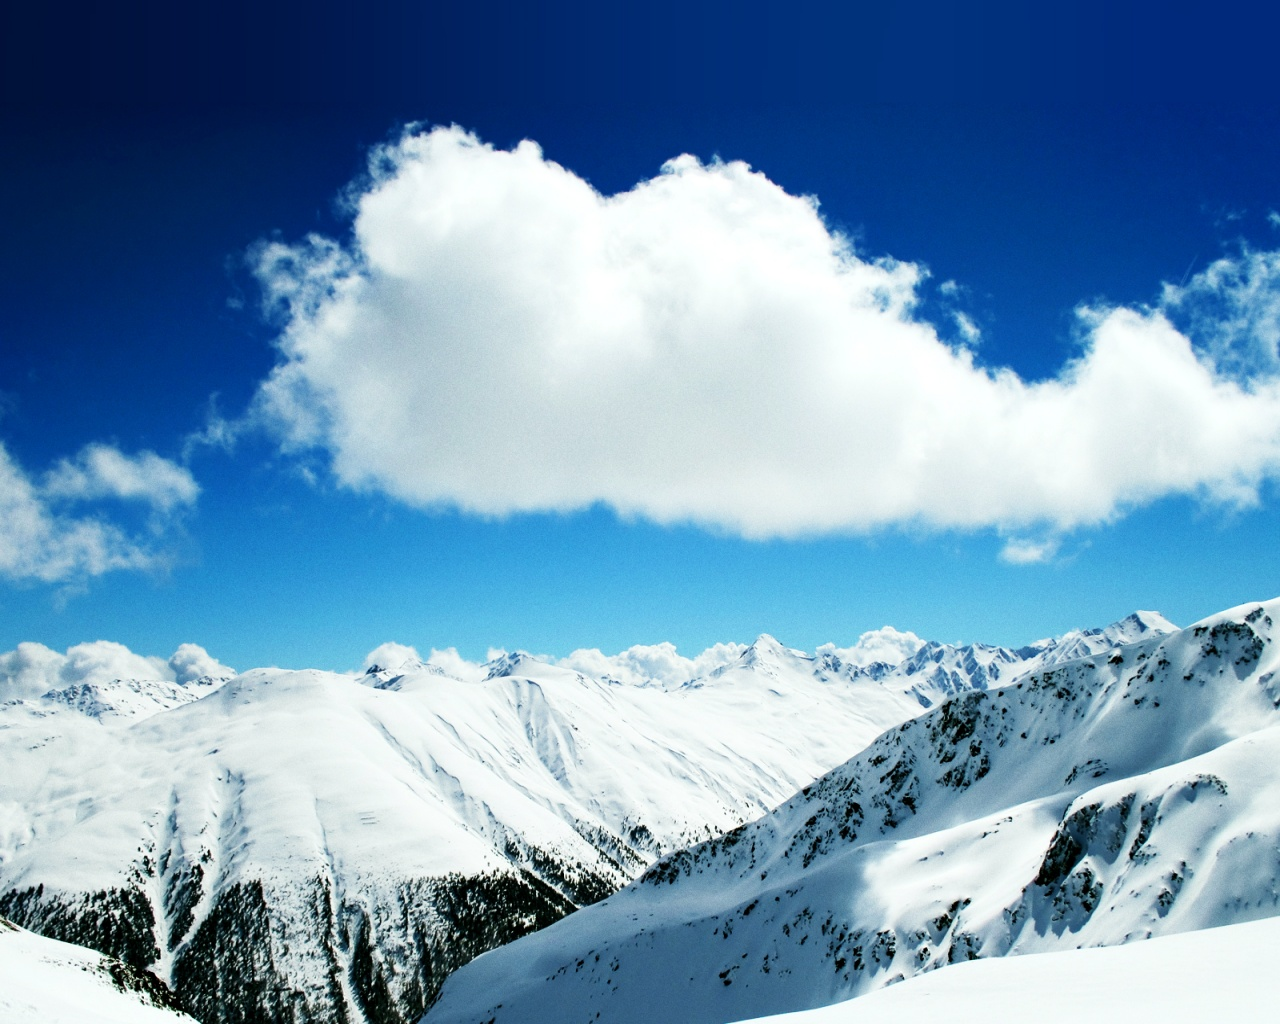 Full wallpaper snow mountain wallpapers - Snowy wallpaper ...